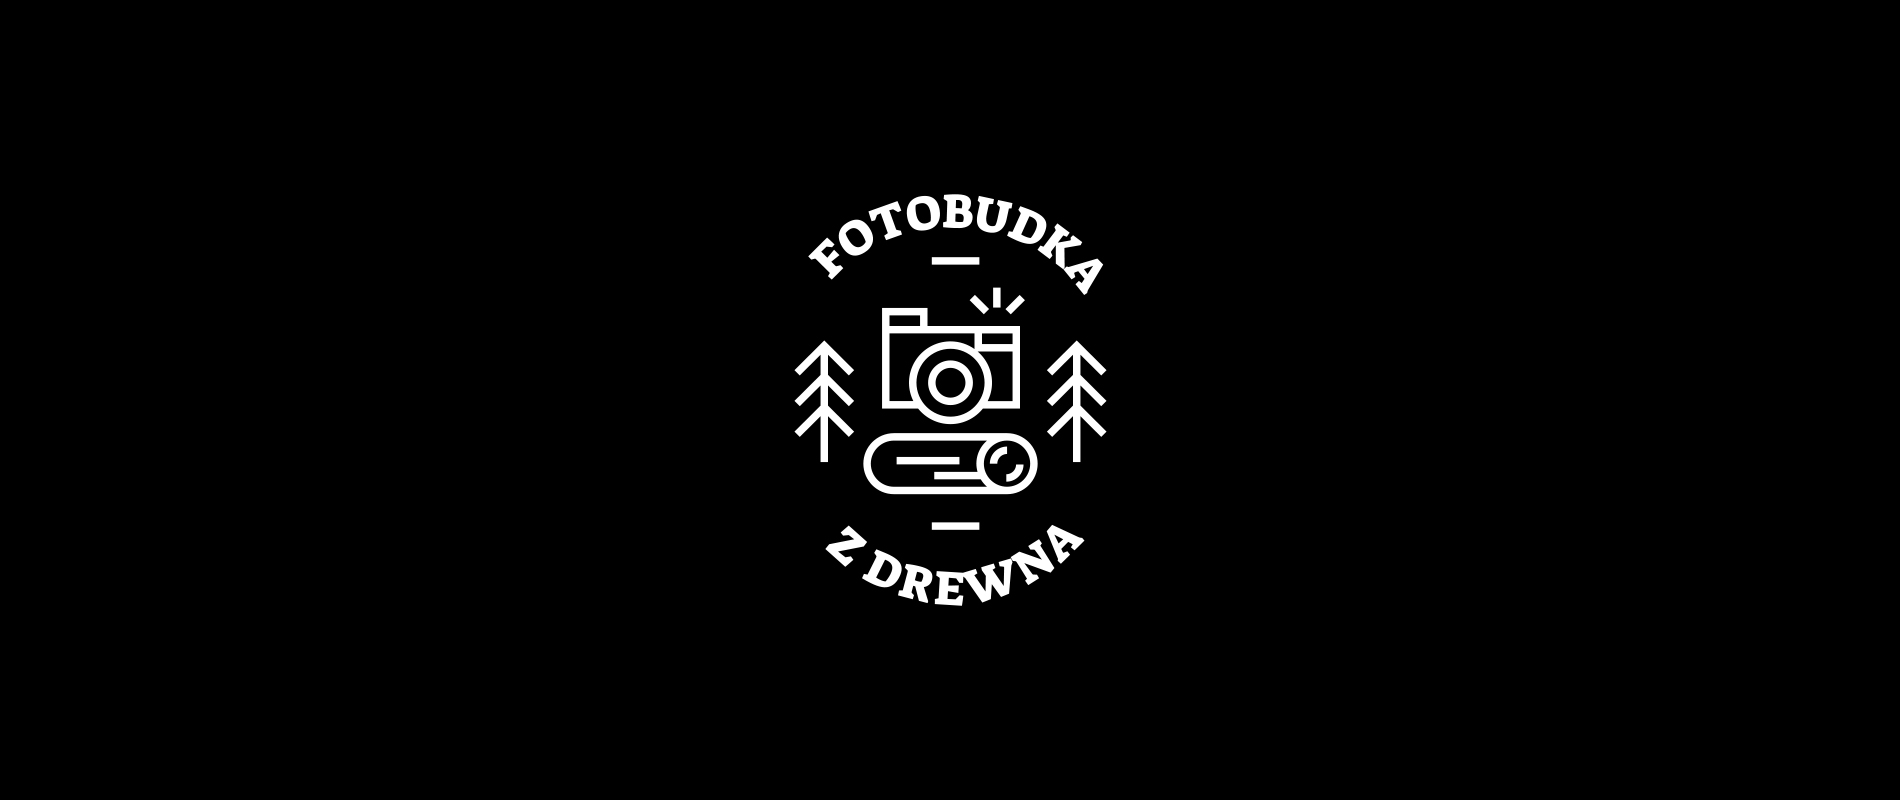 Fotobudka - logo on a black background